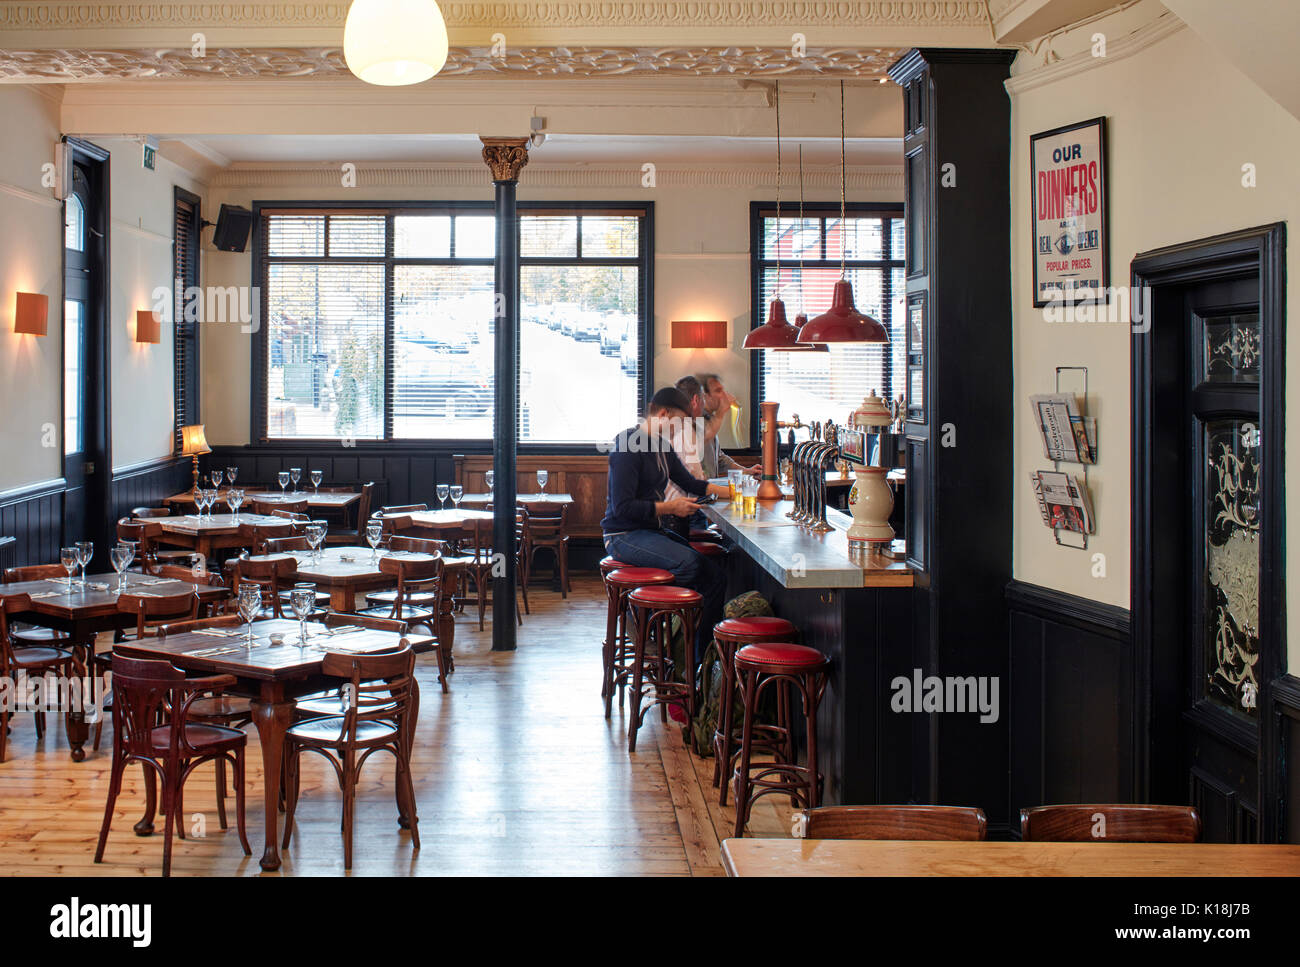 Gastro Design London Gastro Pub Interior Stock Photo 155697903 Alamy